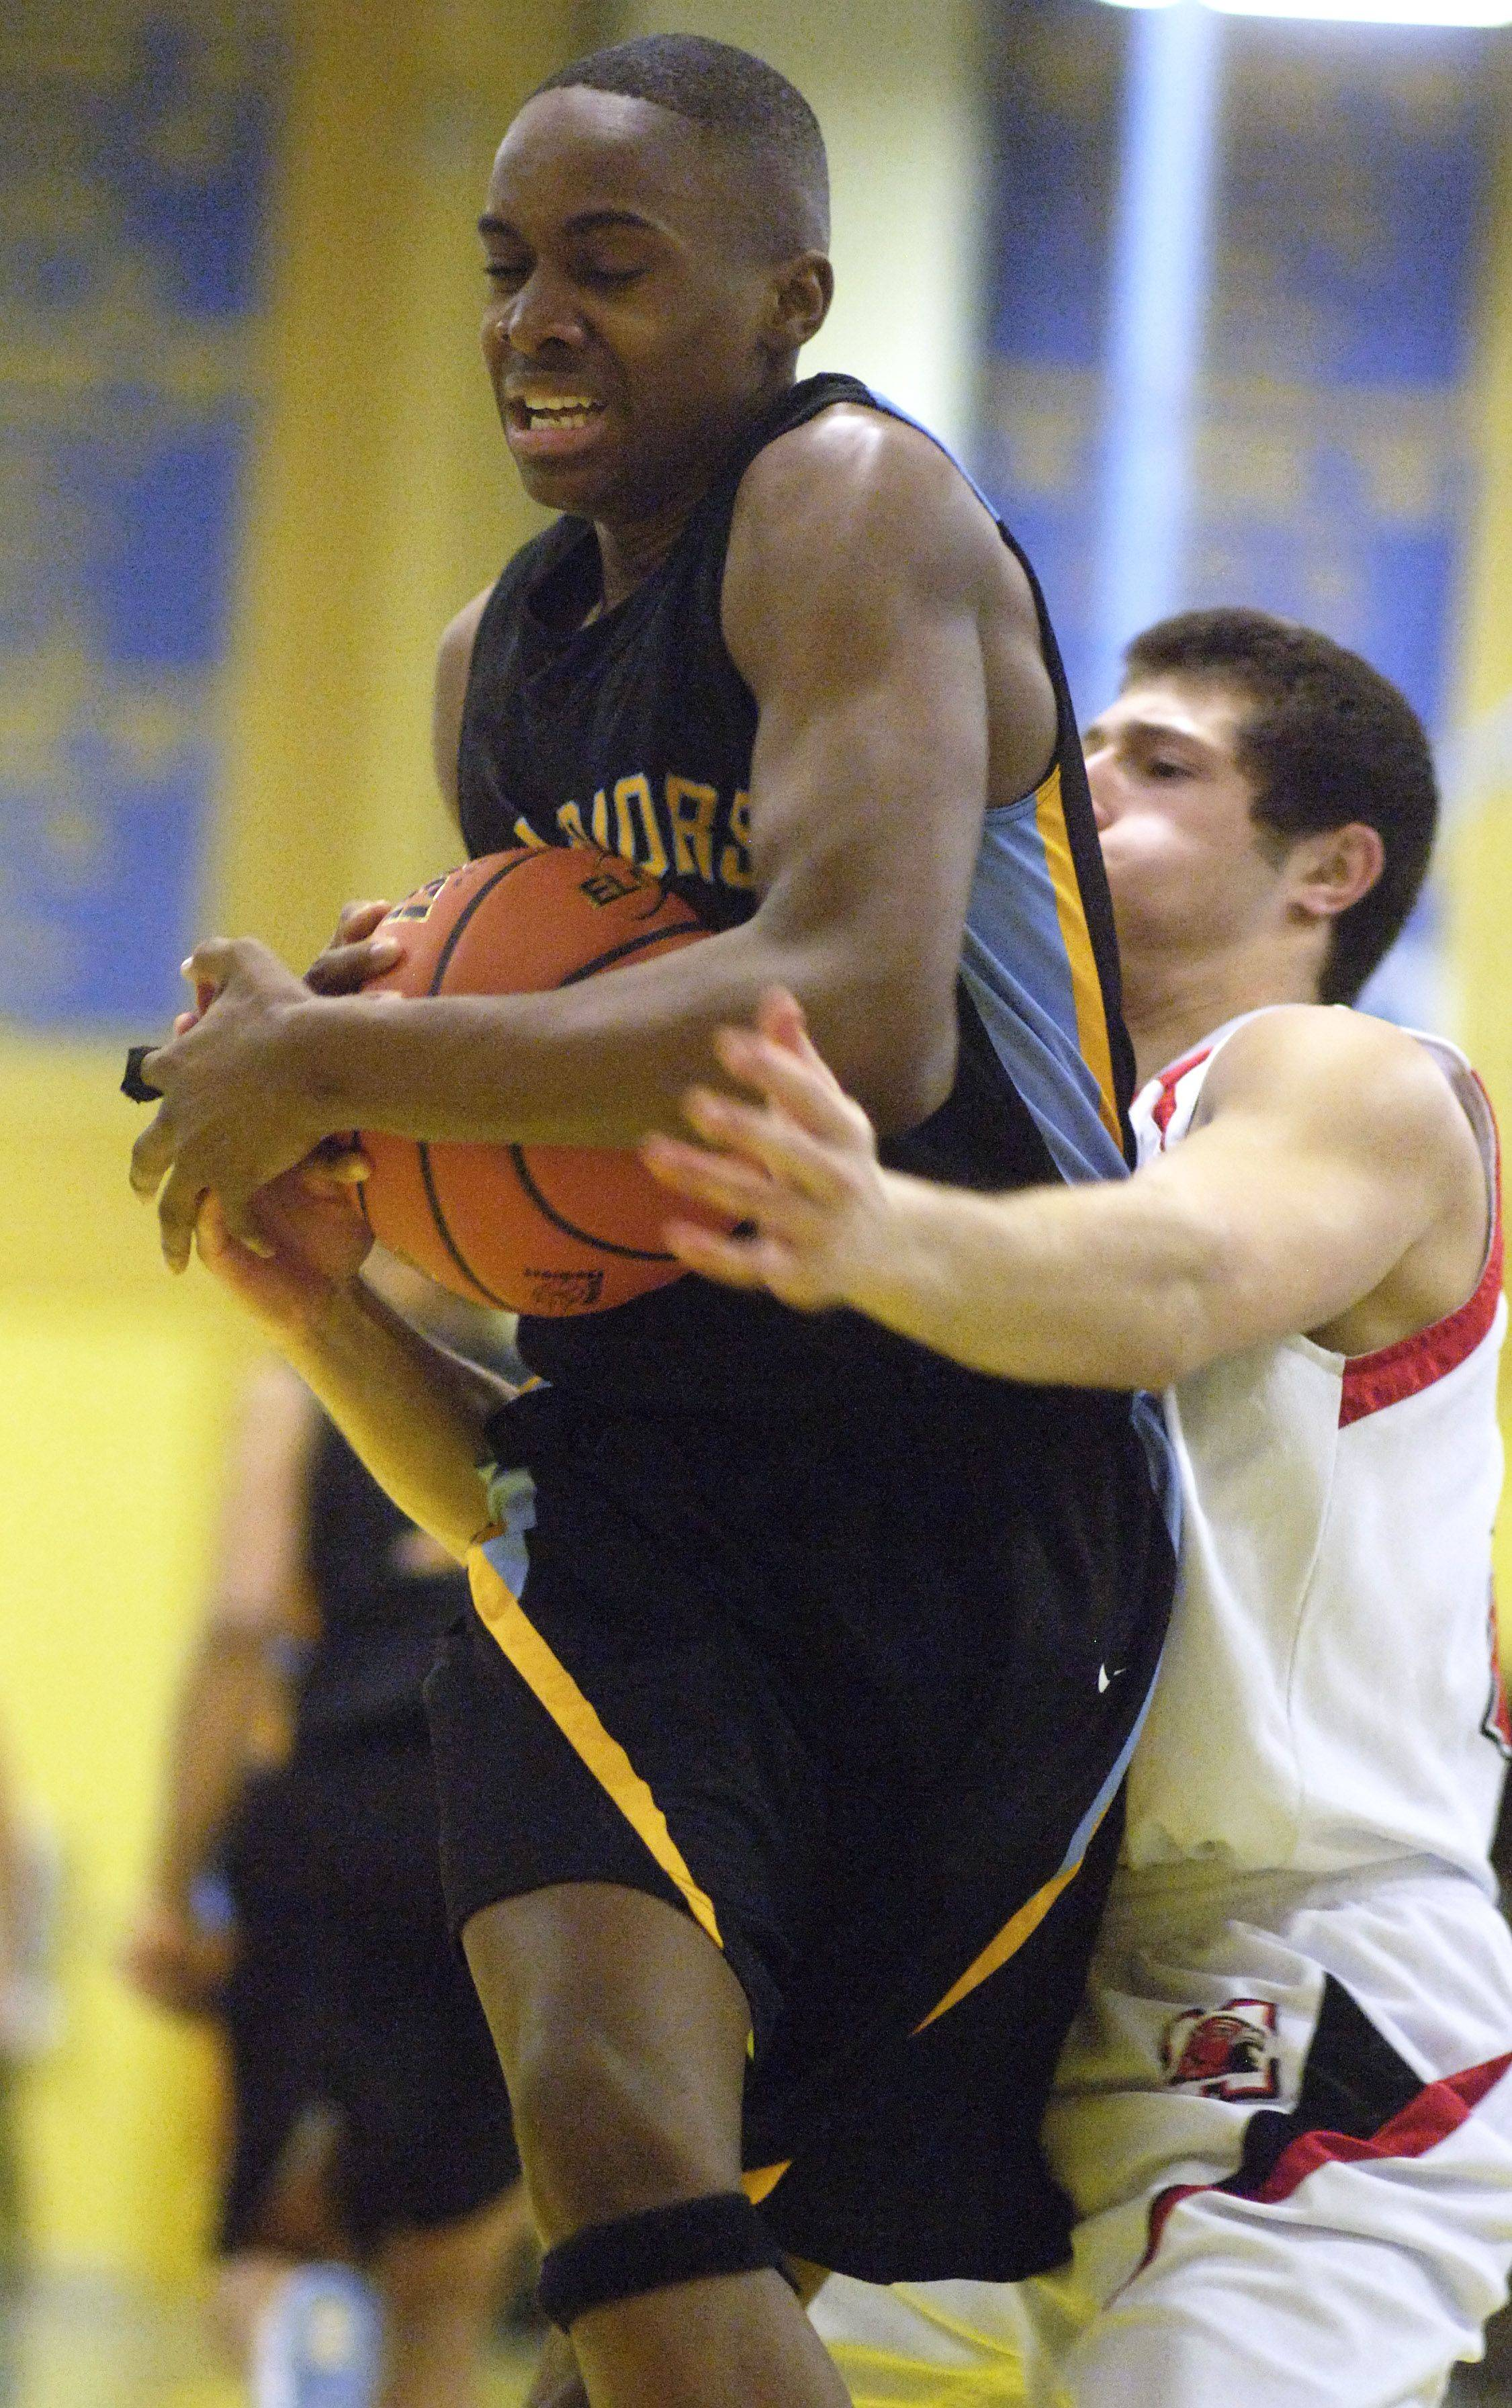 Maine West falls short to Maine South